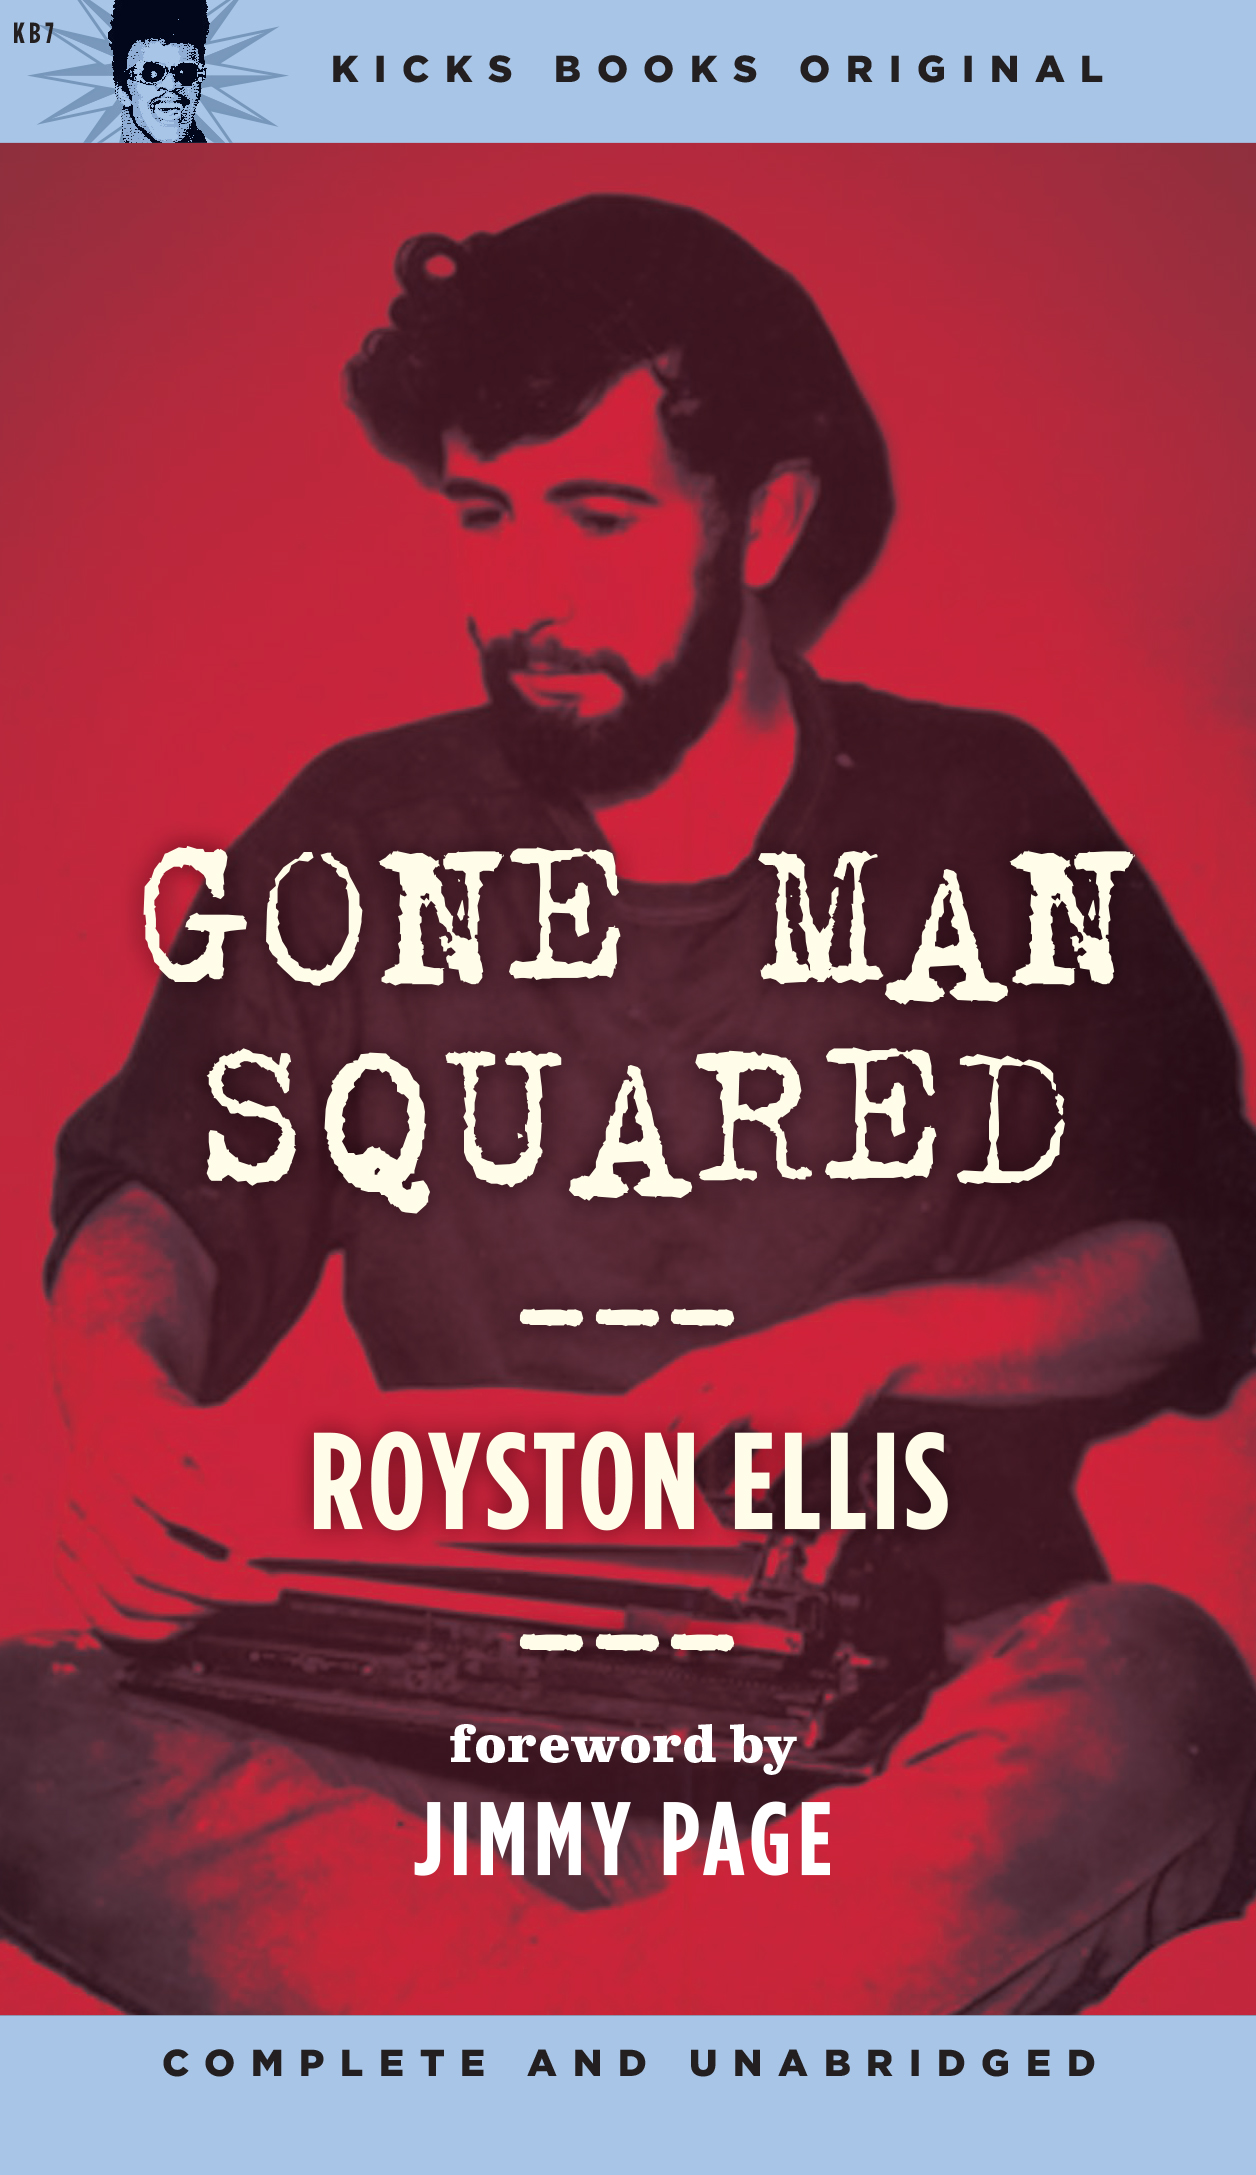 Royston Ellis - Gone Man Squared cover